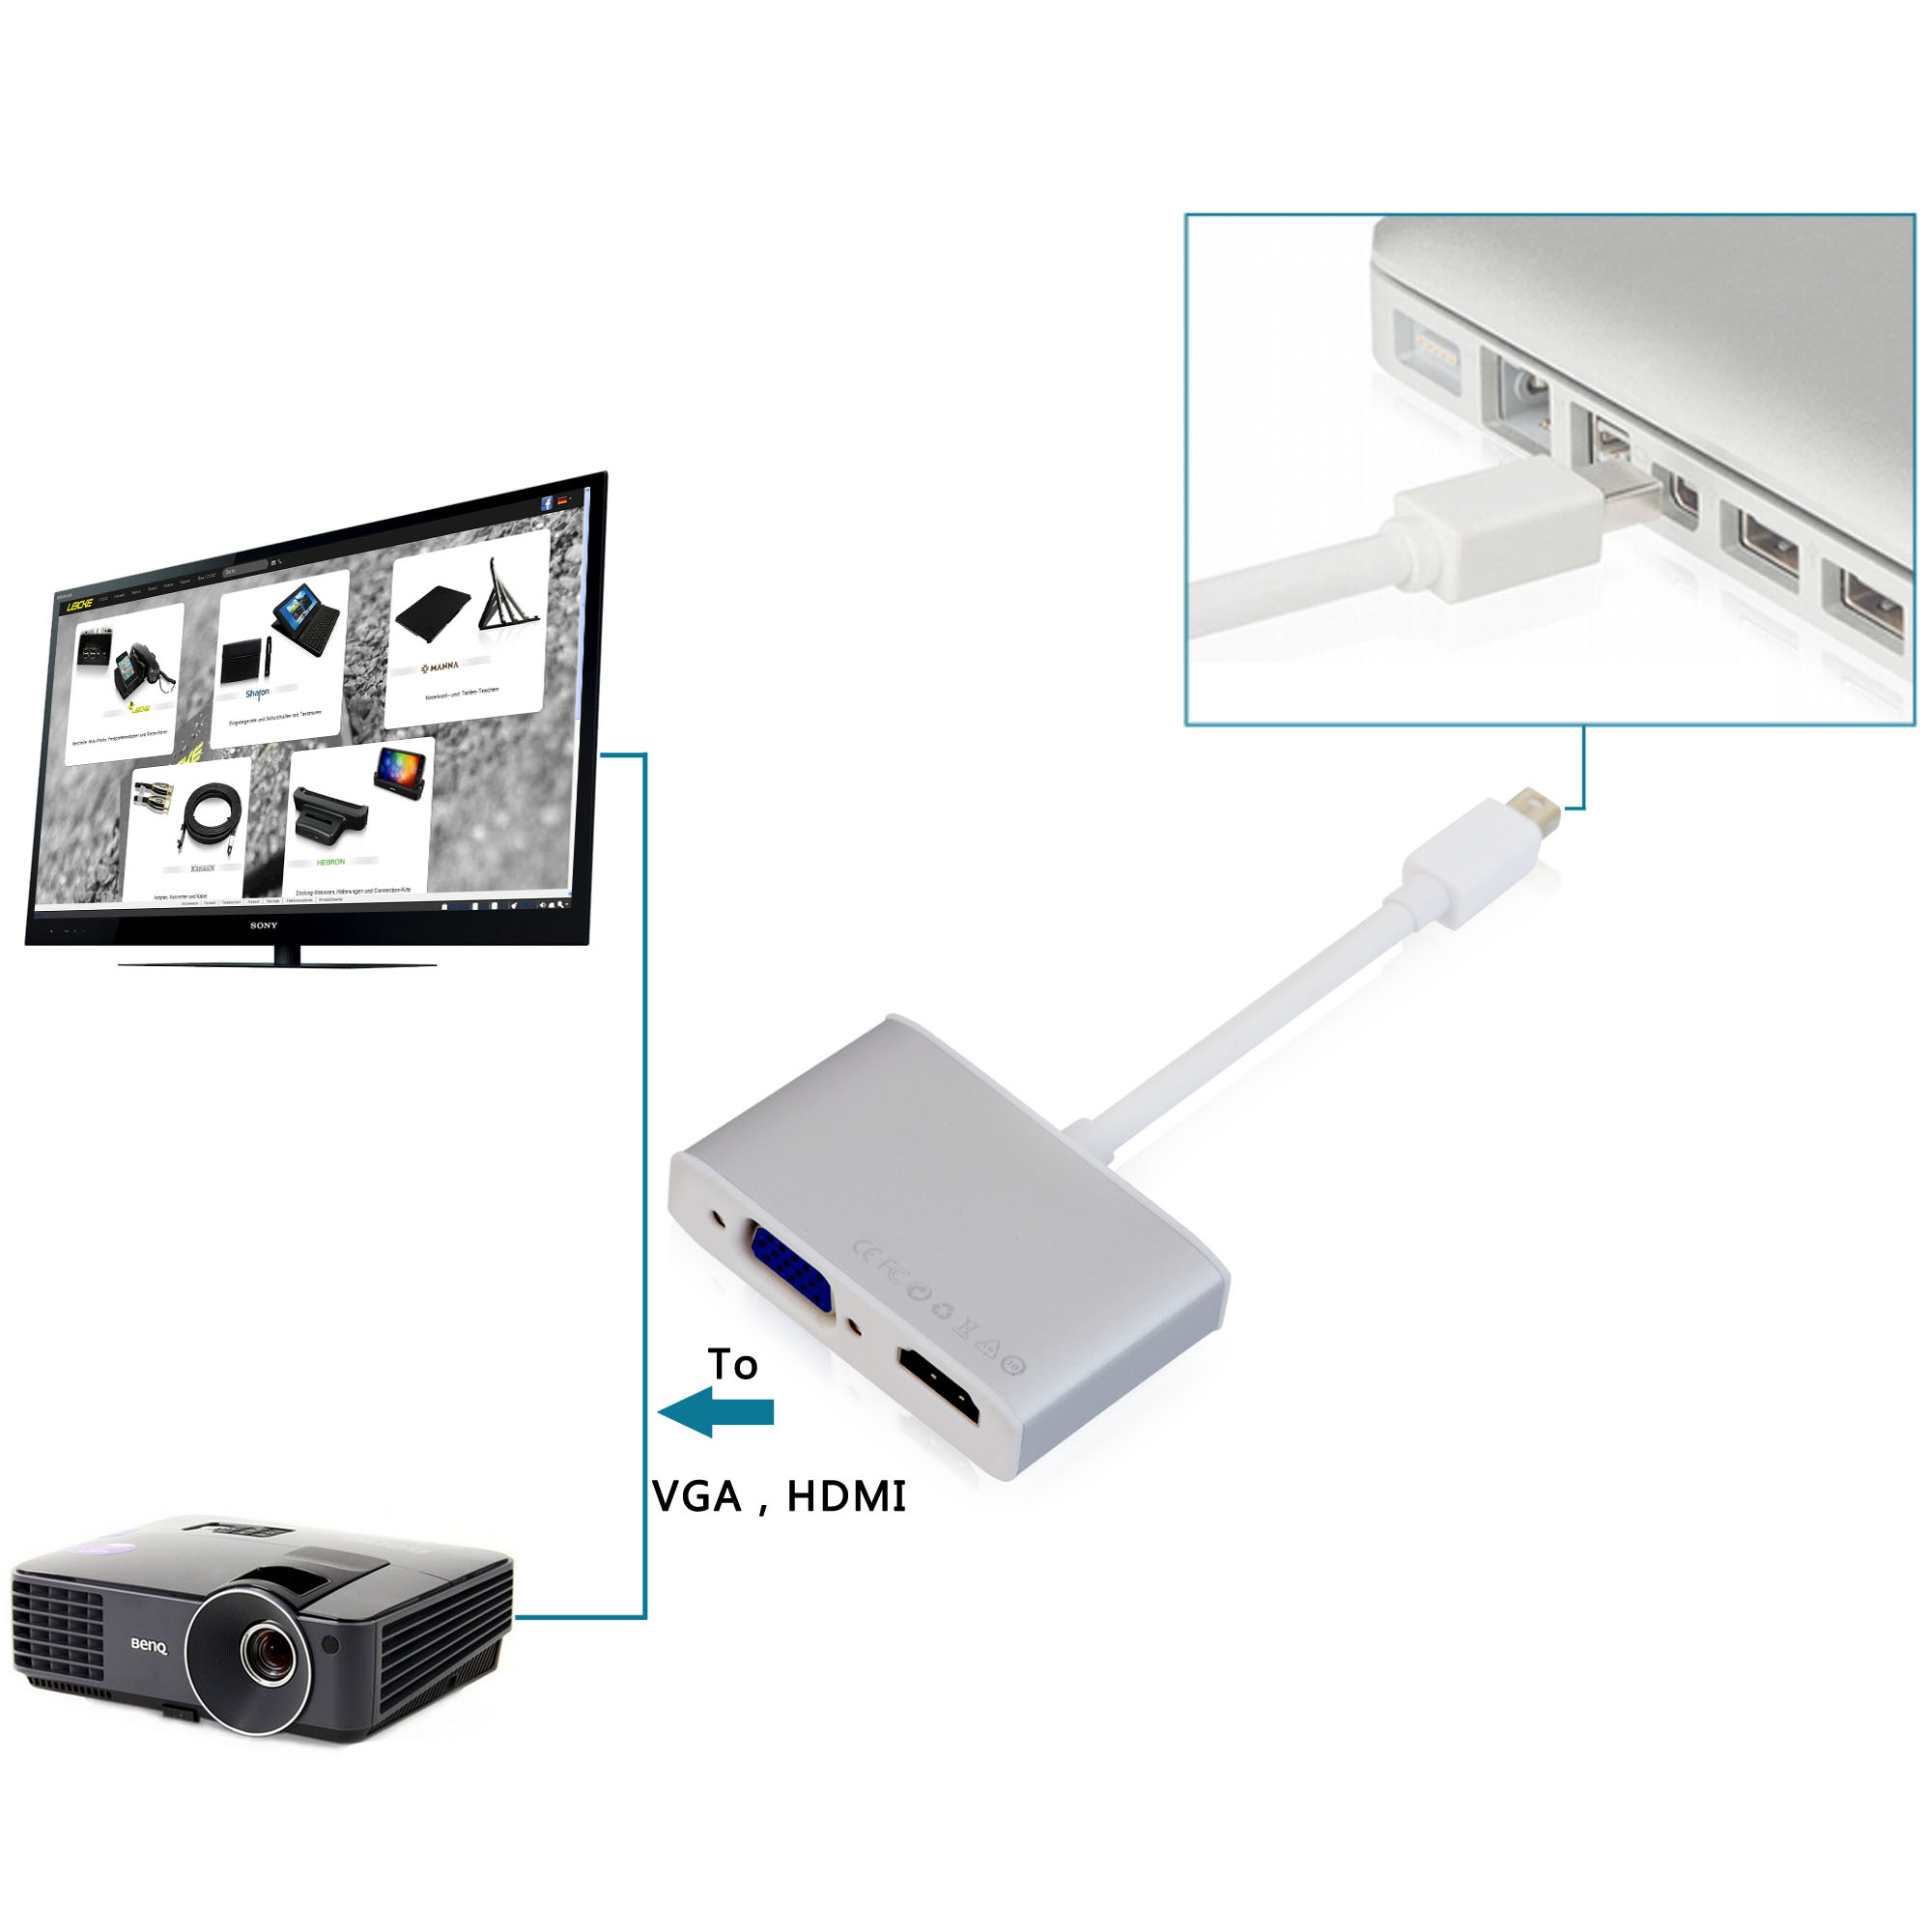 Leicke Kanaan Mini Displayport To Hdmi And Vga Adapter Audio Via Micro Conversion Cable Converter Kn40541 Premium Aluminium Housing 00 2000 Qy 01